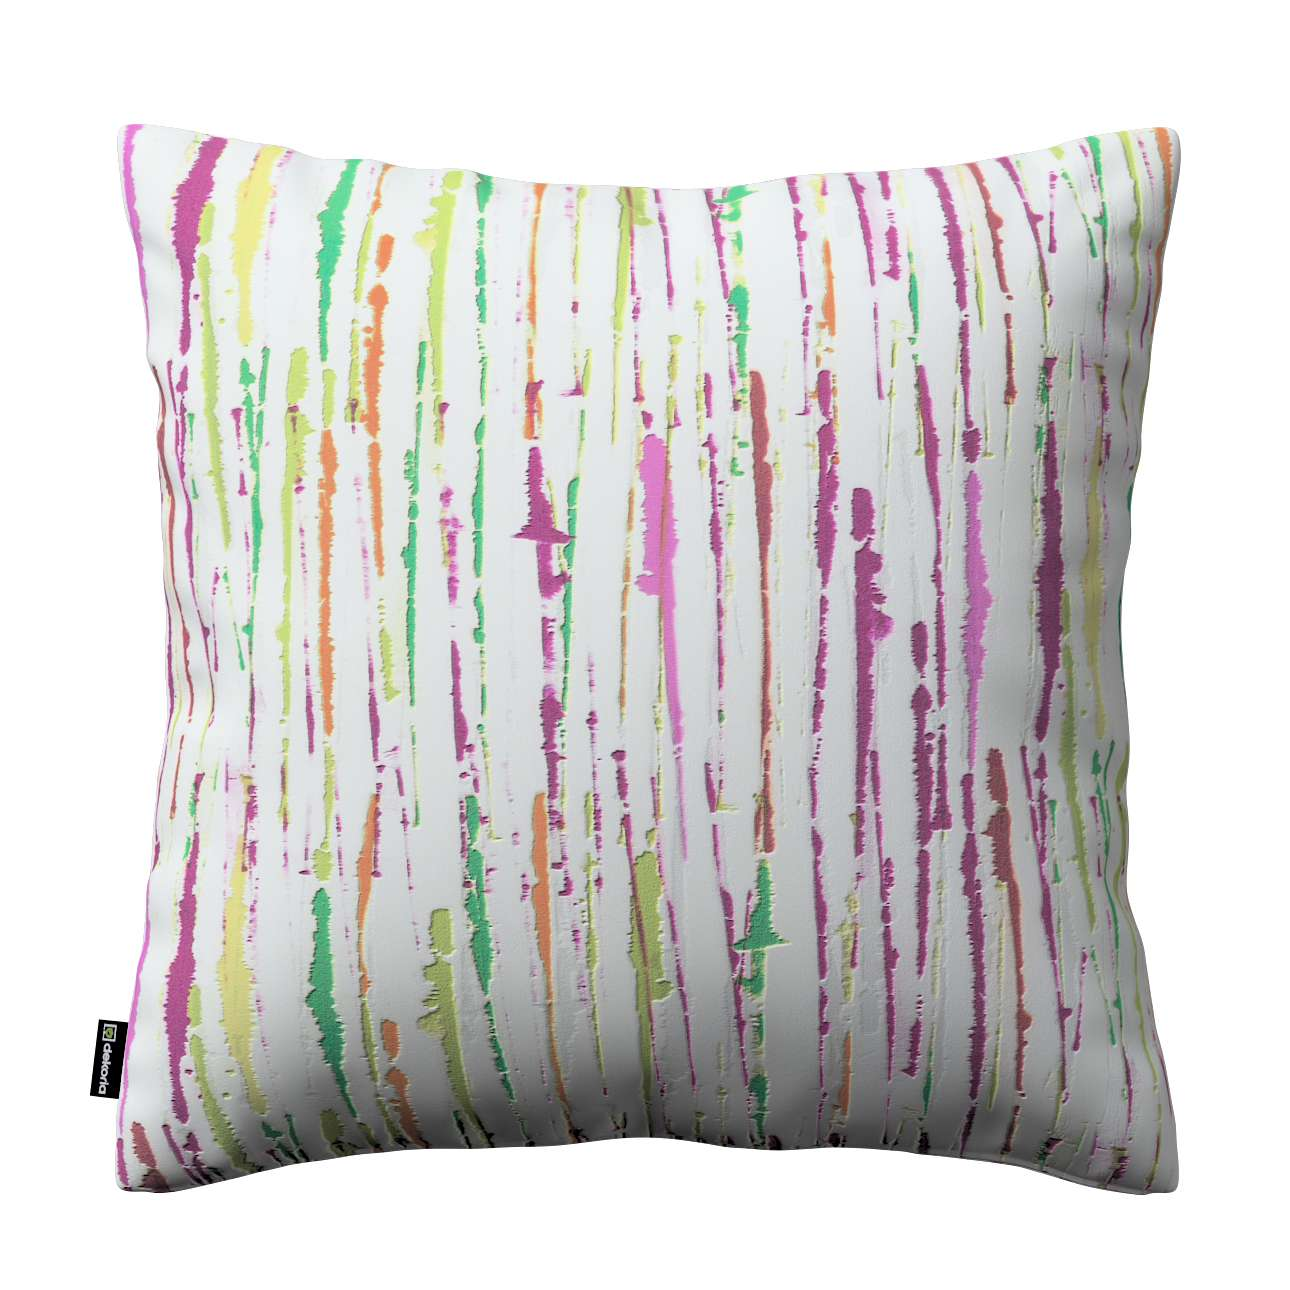 Kinga cushion cover 43 x 43 cm (17 x 17 inch) in collection Aquarelle, fabric: 140-72